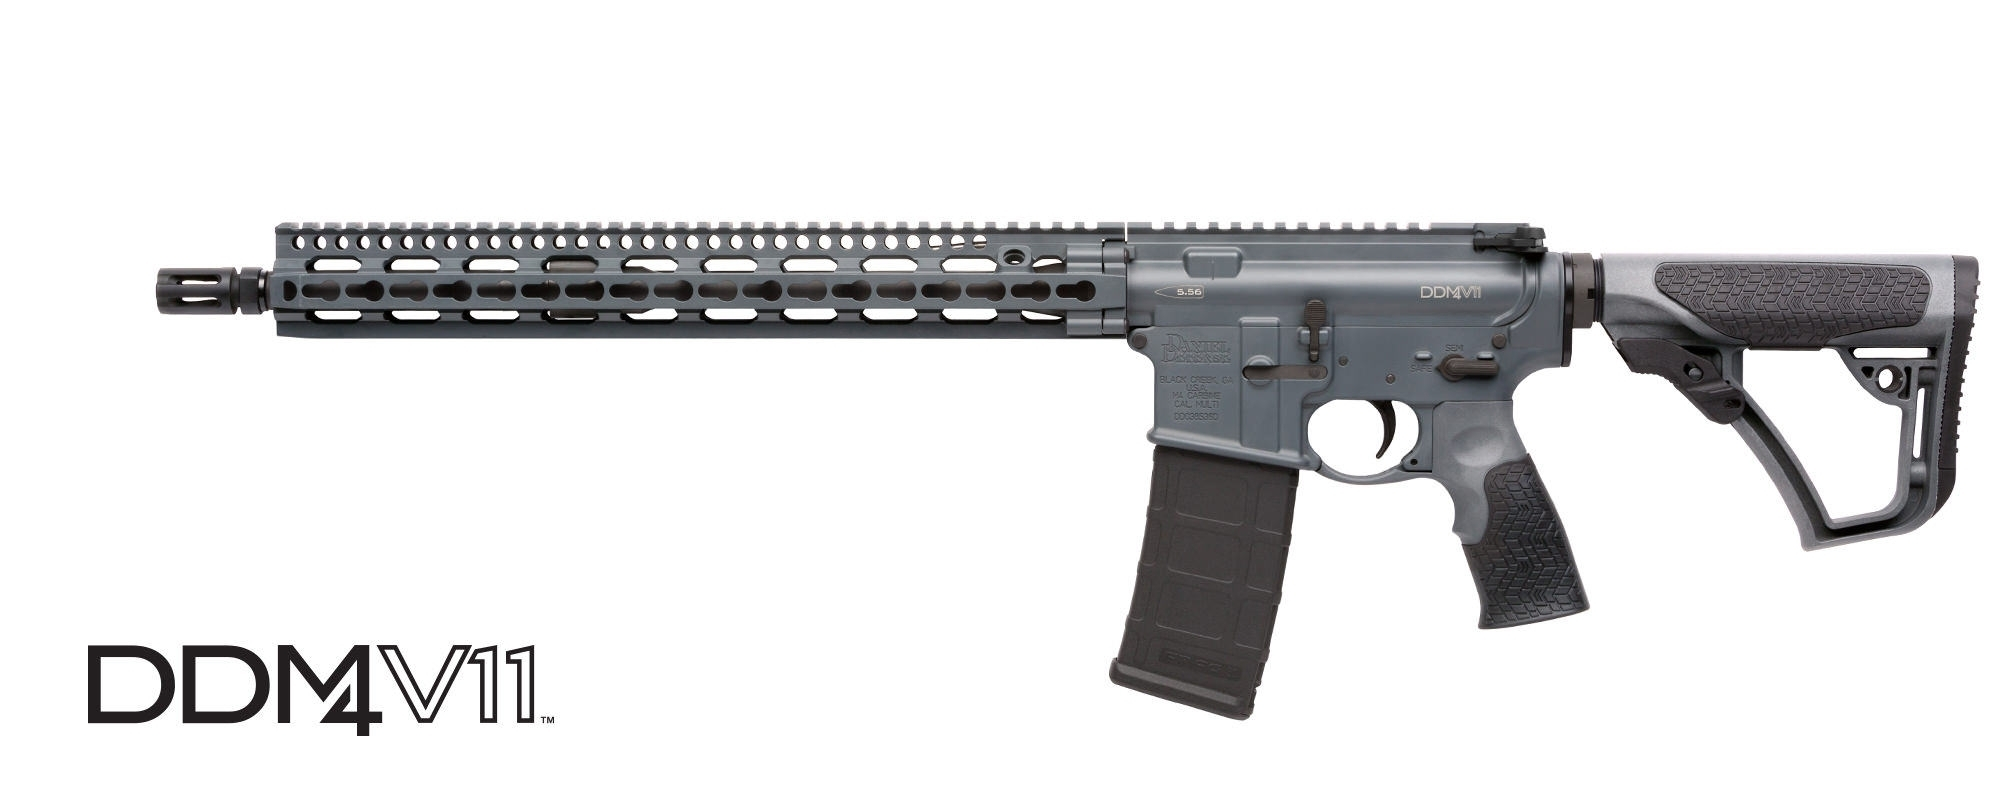 "DANIEL DEFENSE M4 V11 SEMI-AUTO CARBINE, 223 (5.56MM NATO), 16"" BBL, TORNADO GREY, NEW"